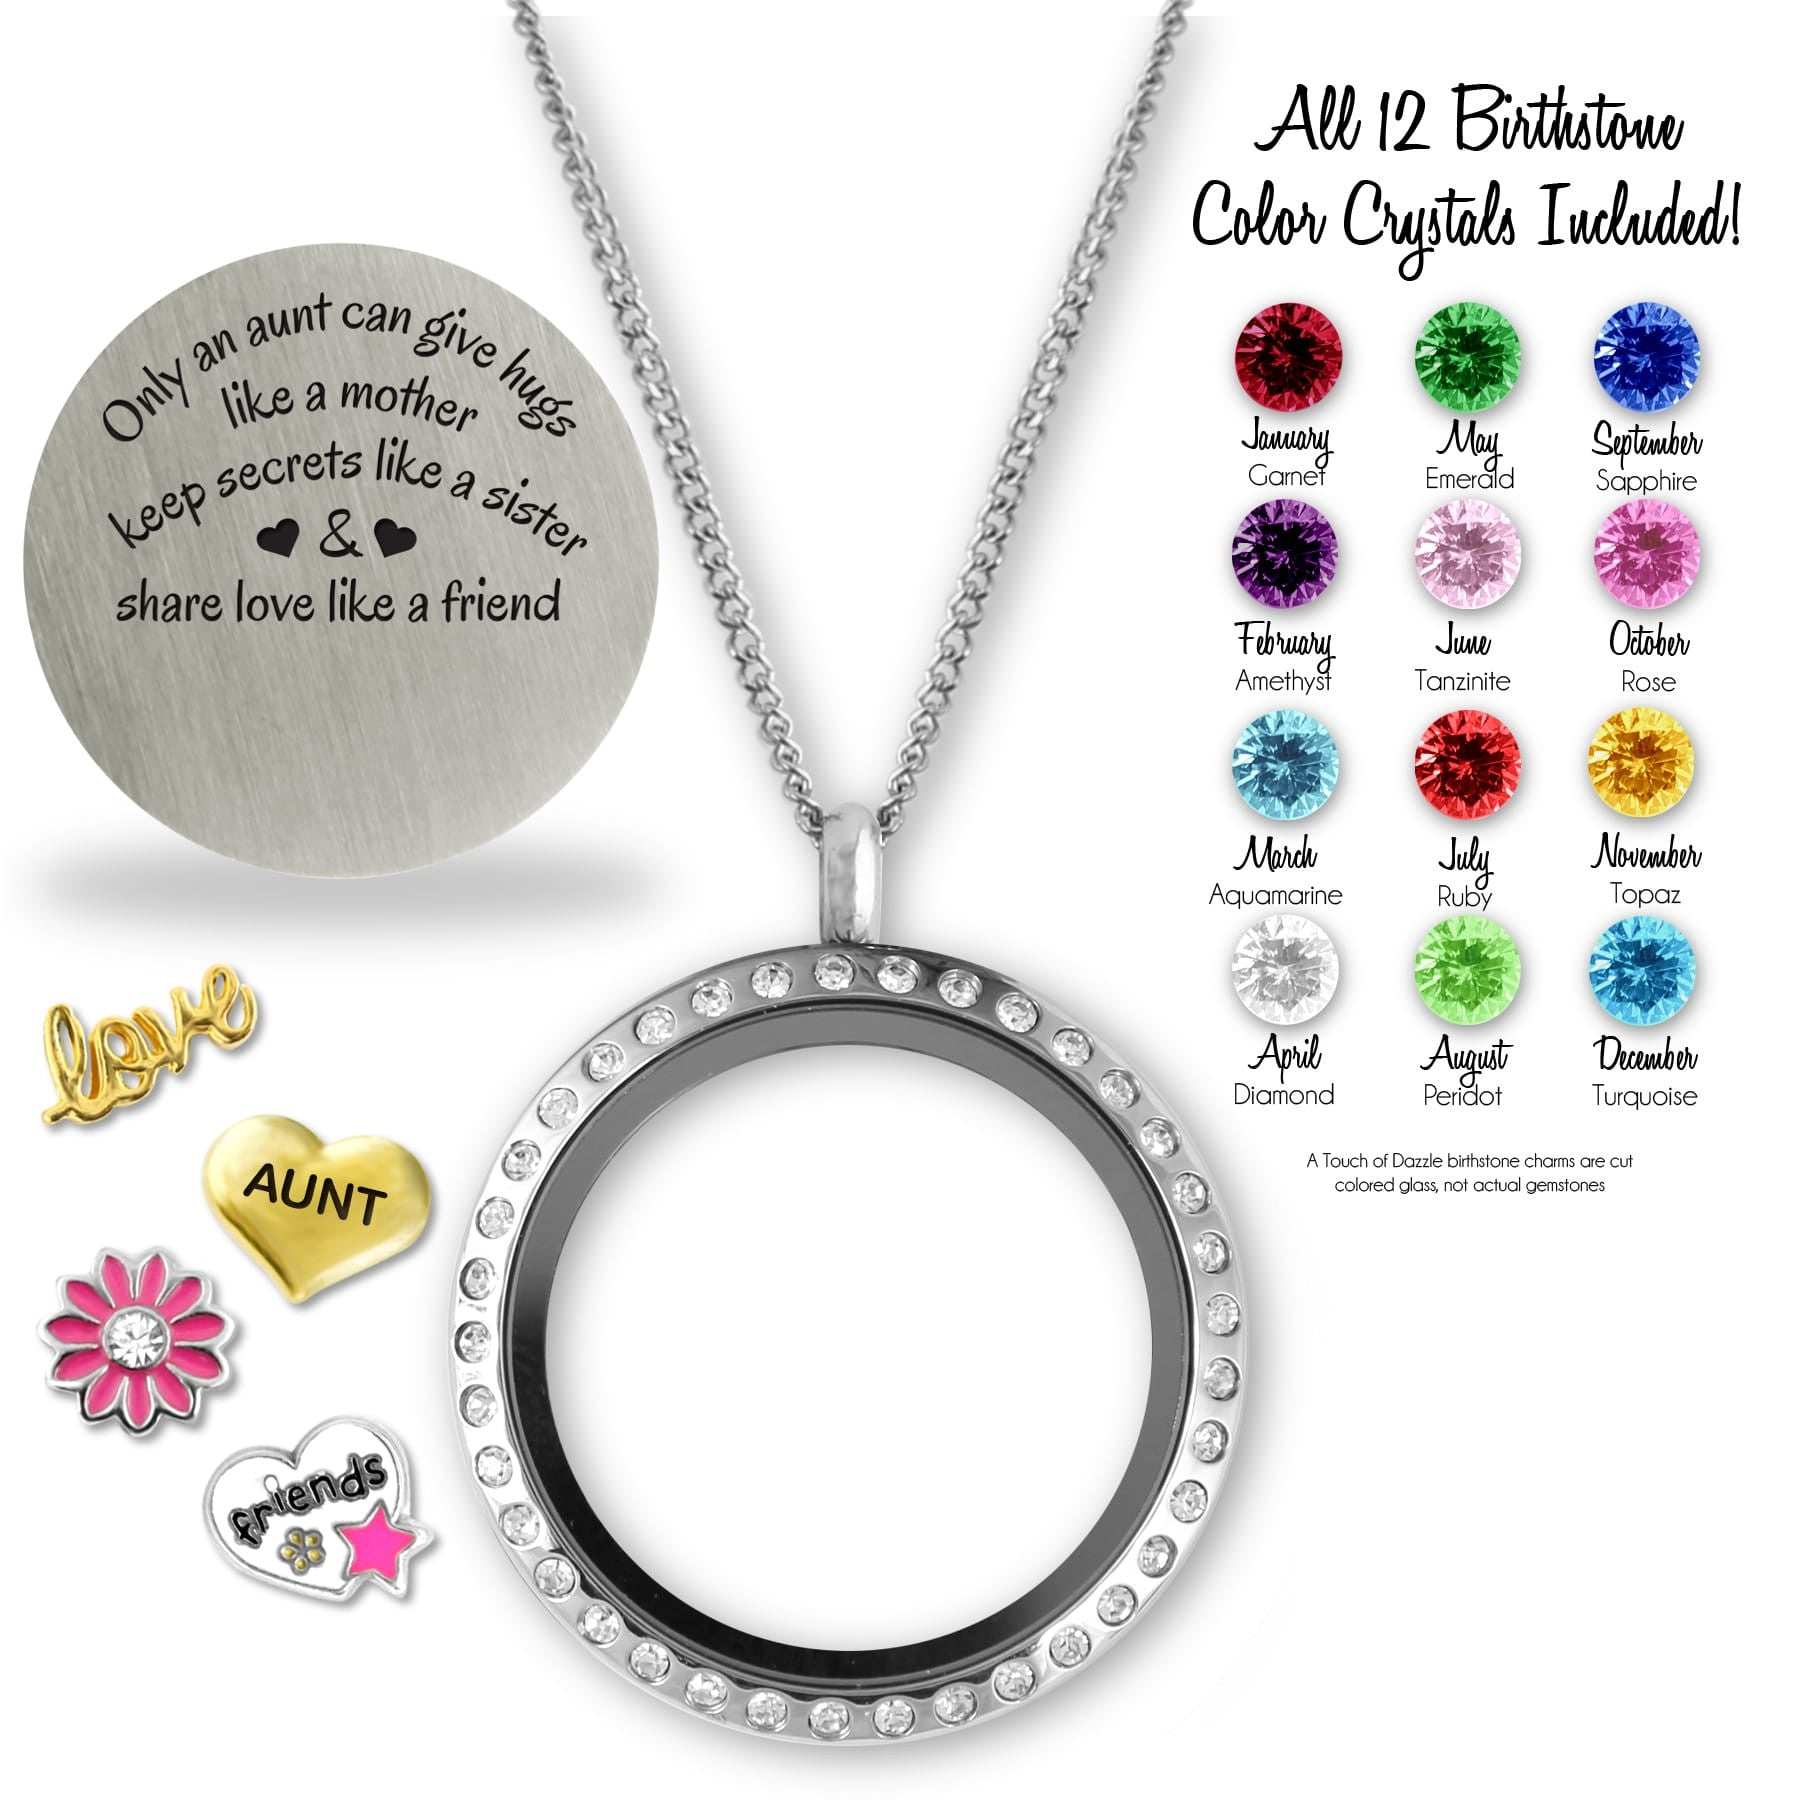 necklace gift products from custom birthday blackberry personalized jewelry niece birthstone charm to aunt